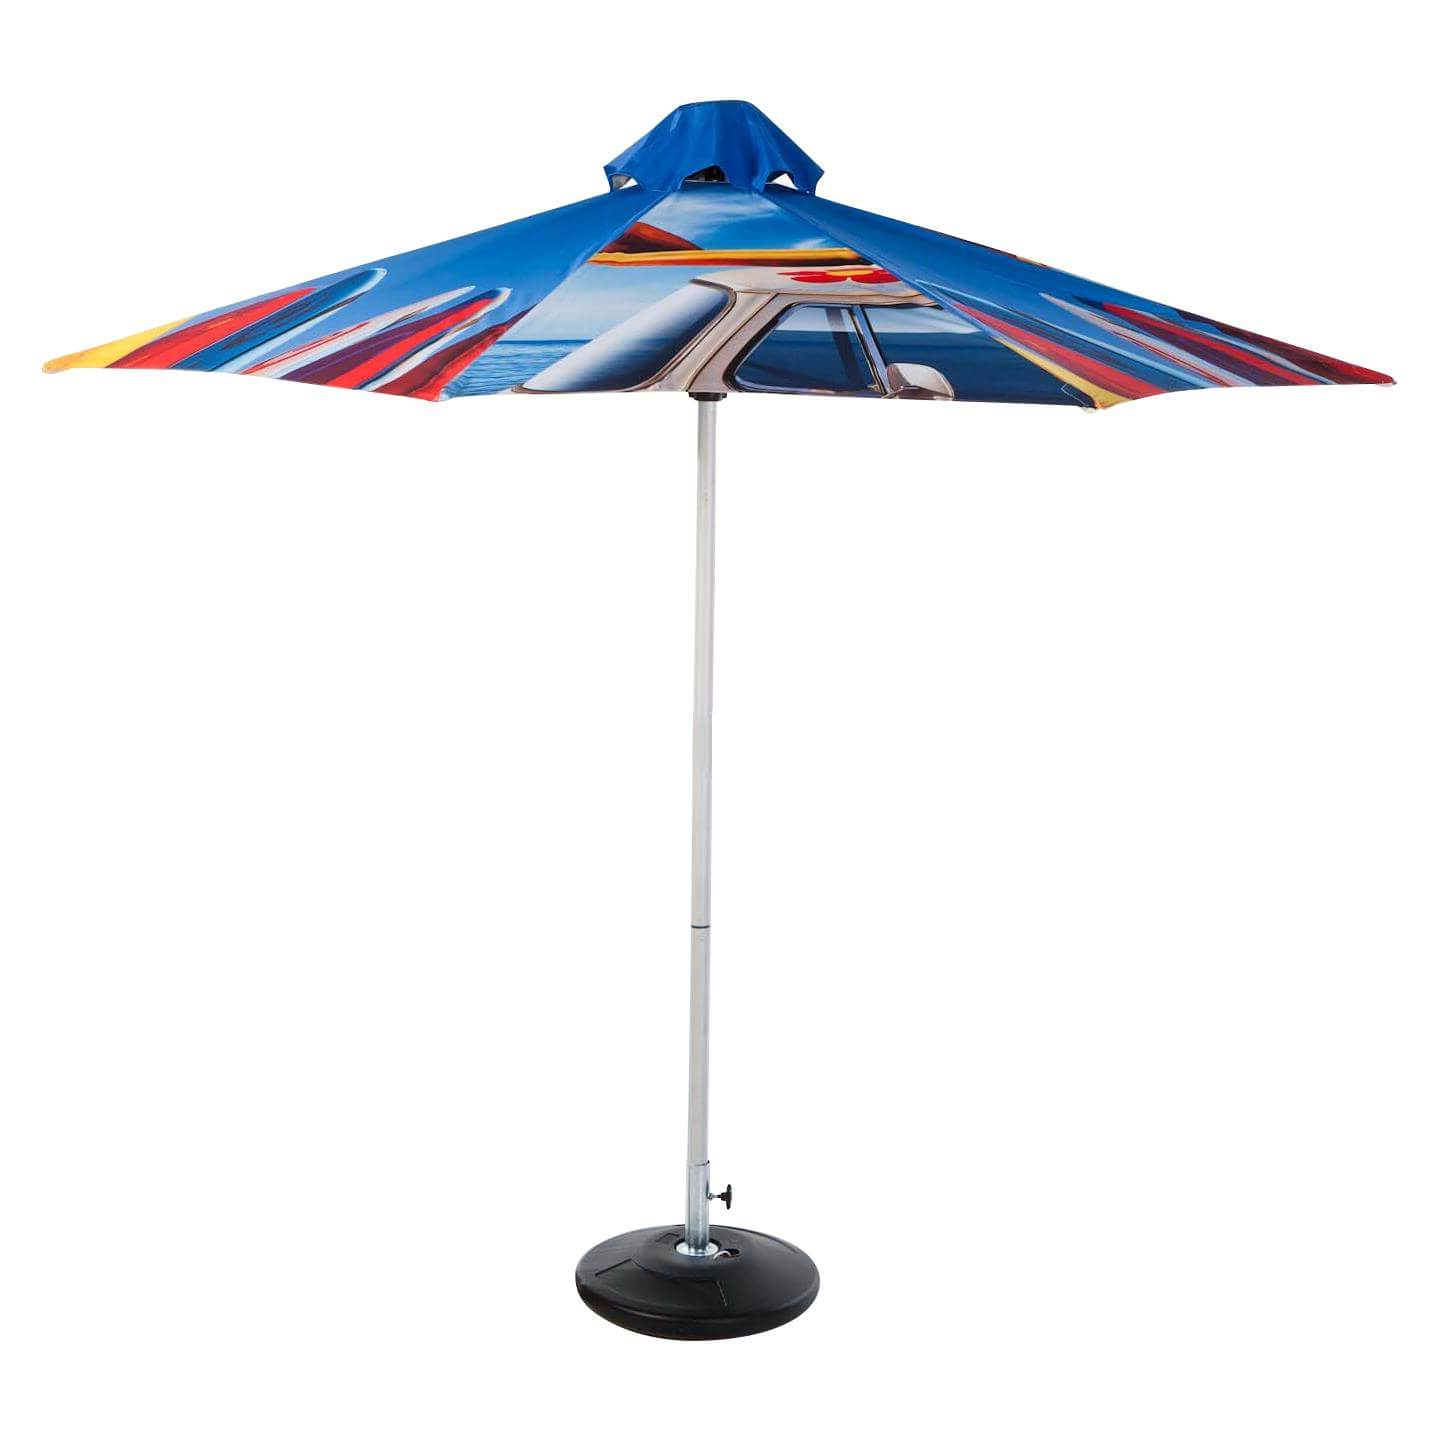 Most Recently Released Market Umbrellas Pertaining To Market Umbrellas – Zodiac Event Displays (View 8 of 20)